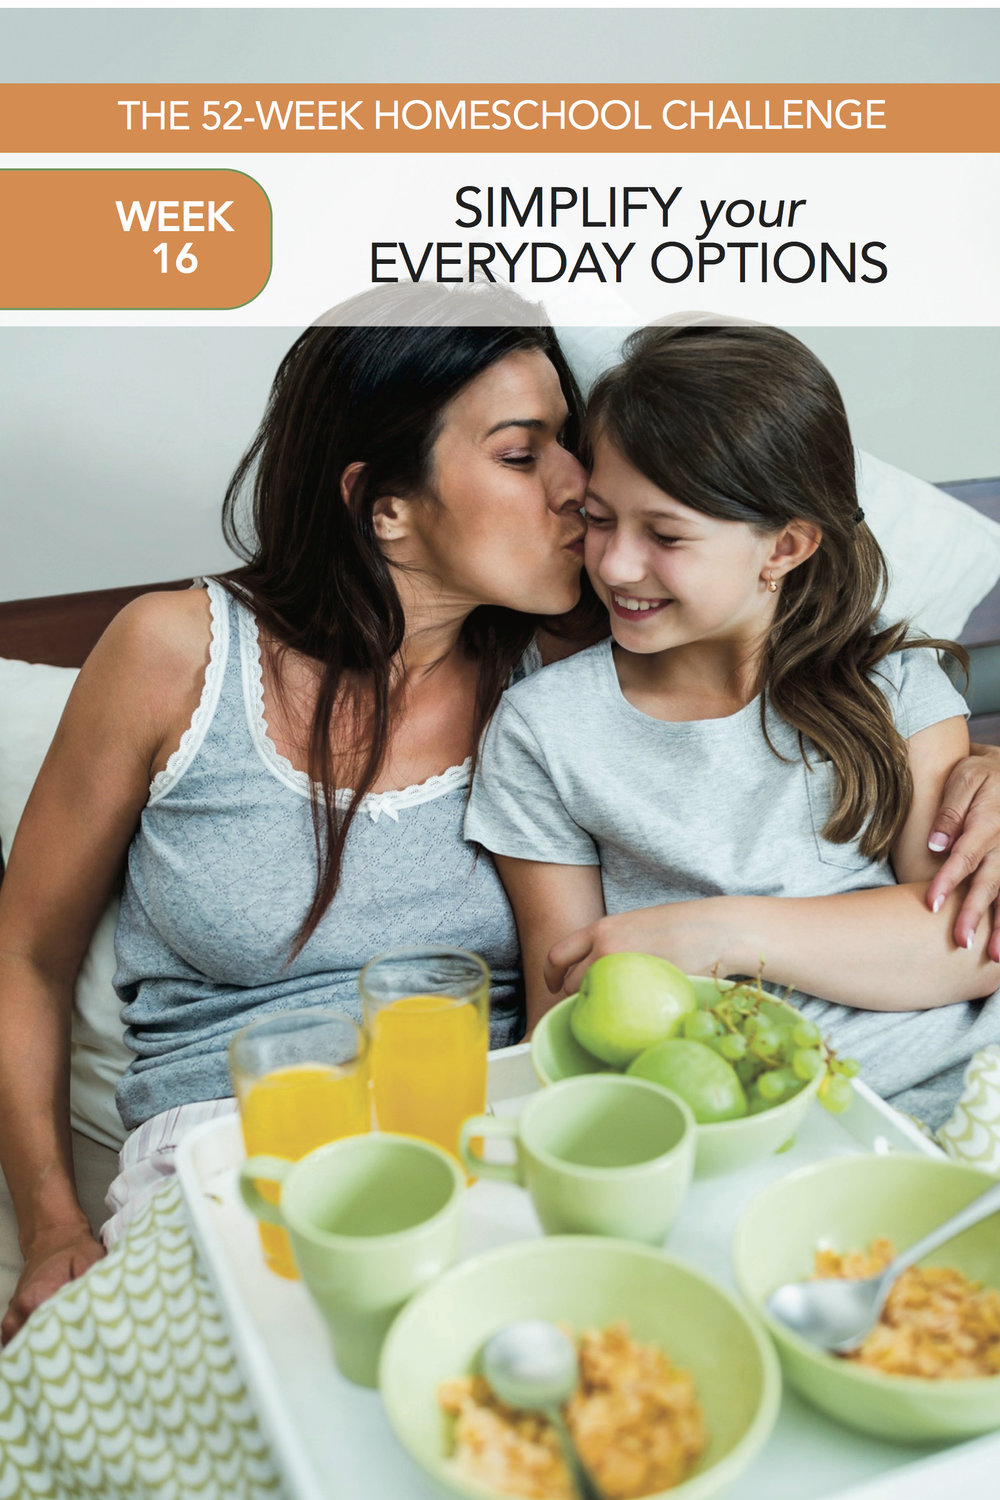 52 Weeks of Happier Homeschooling Week 16: Simplify Your Options